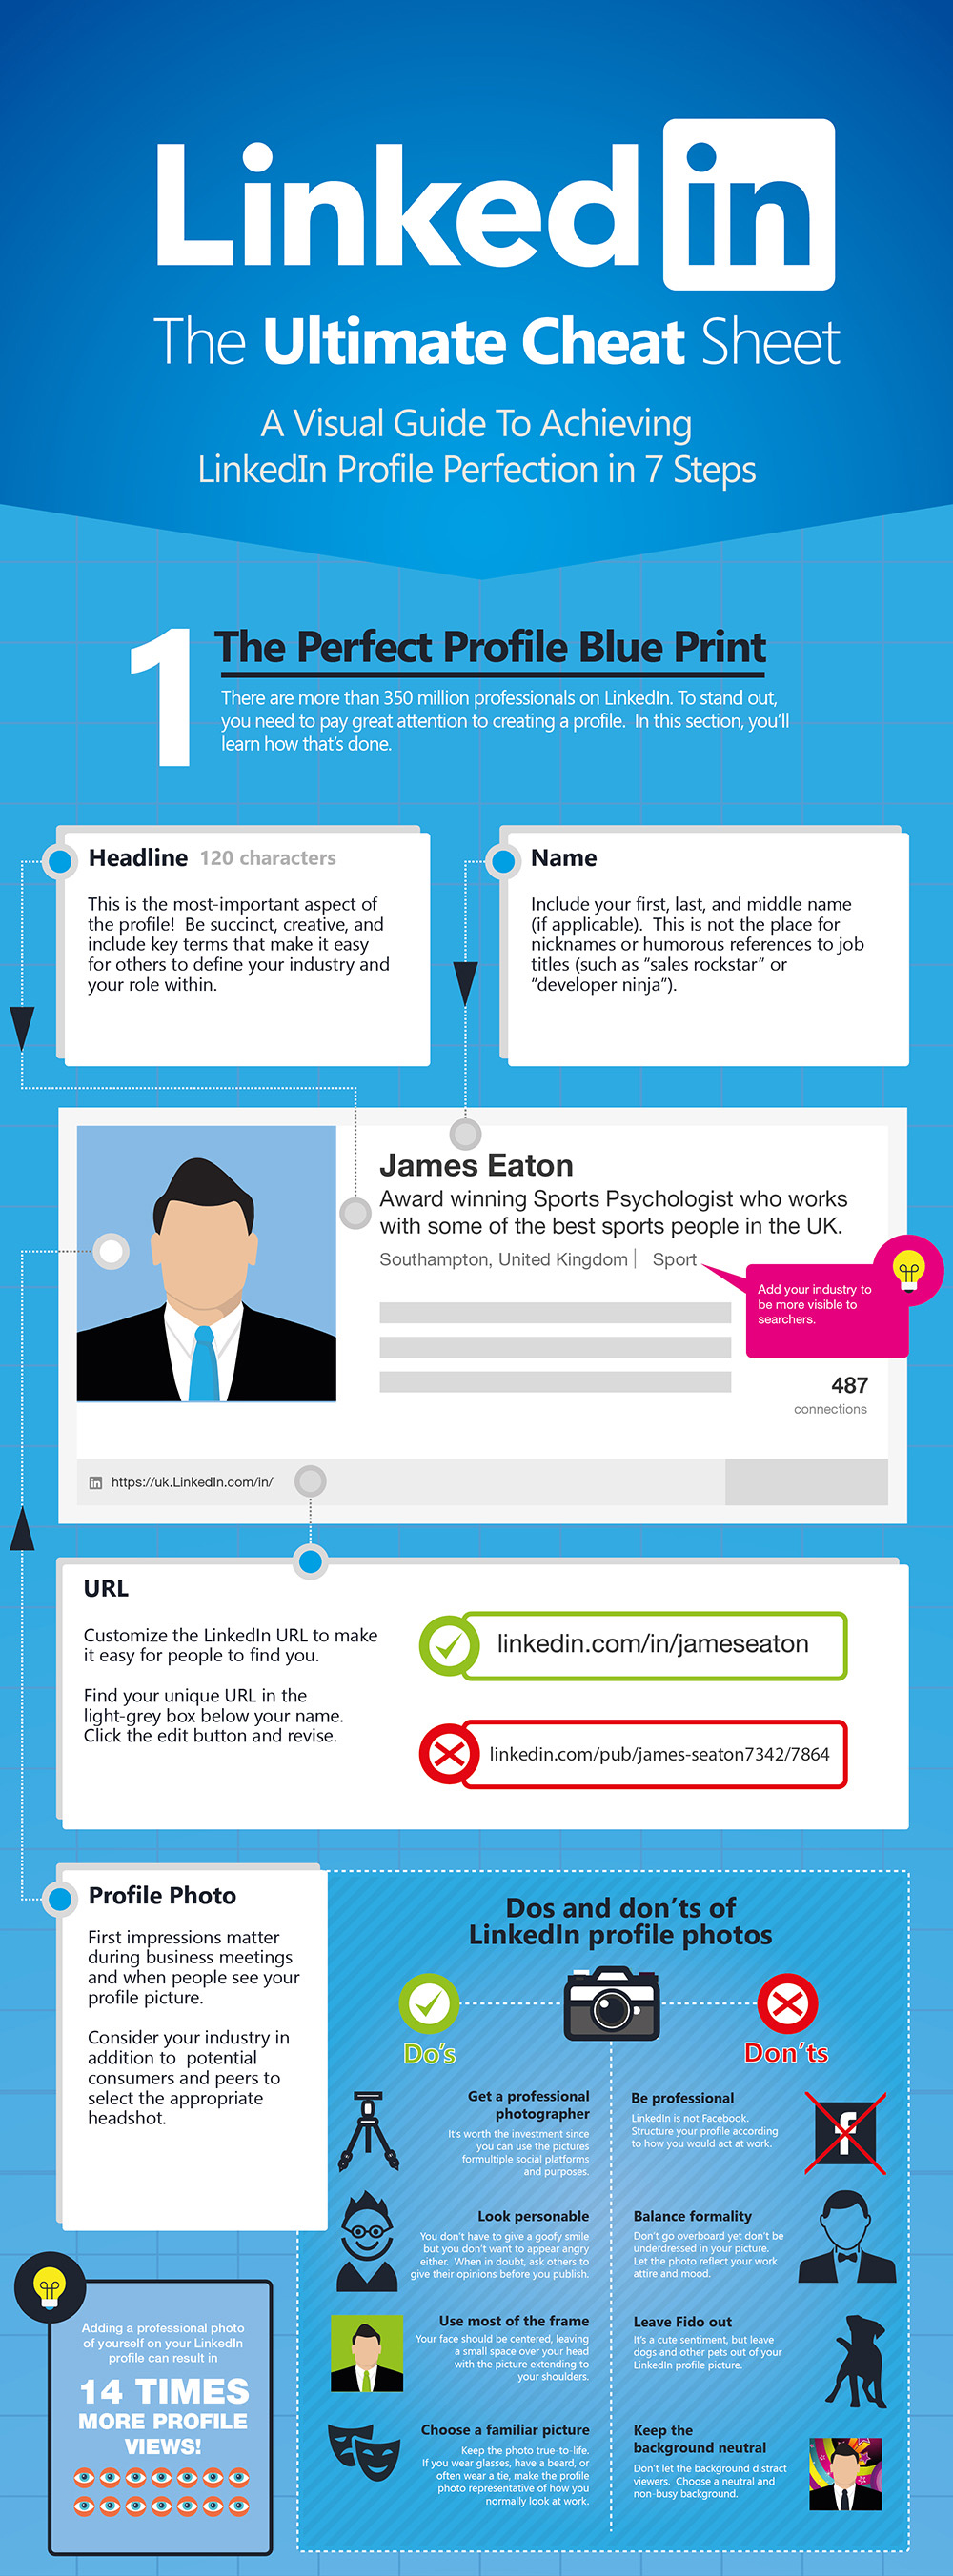 Top of LinkedIn Infographic